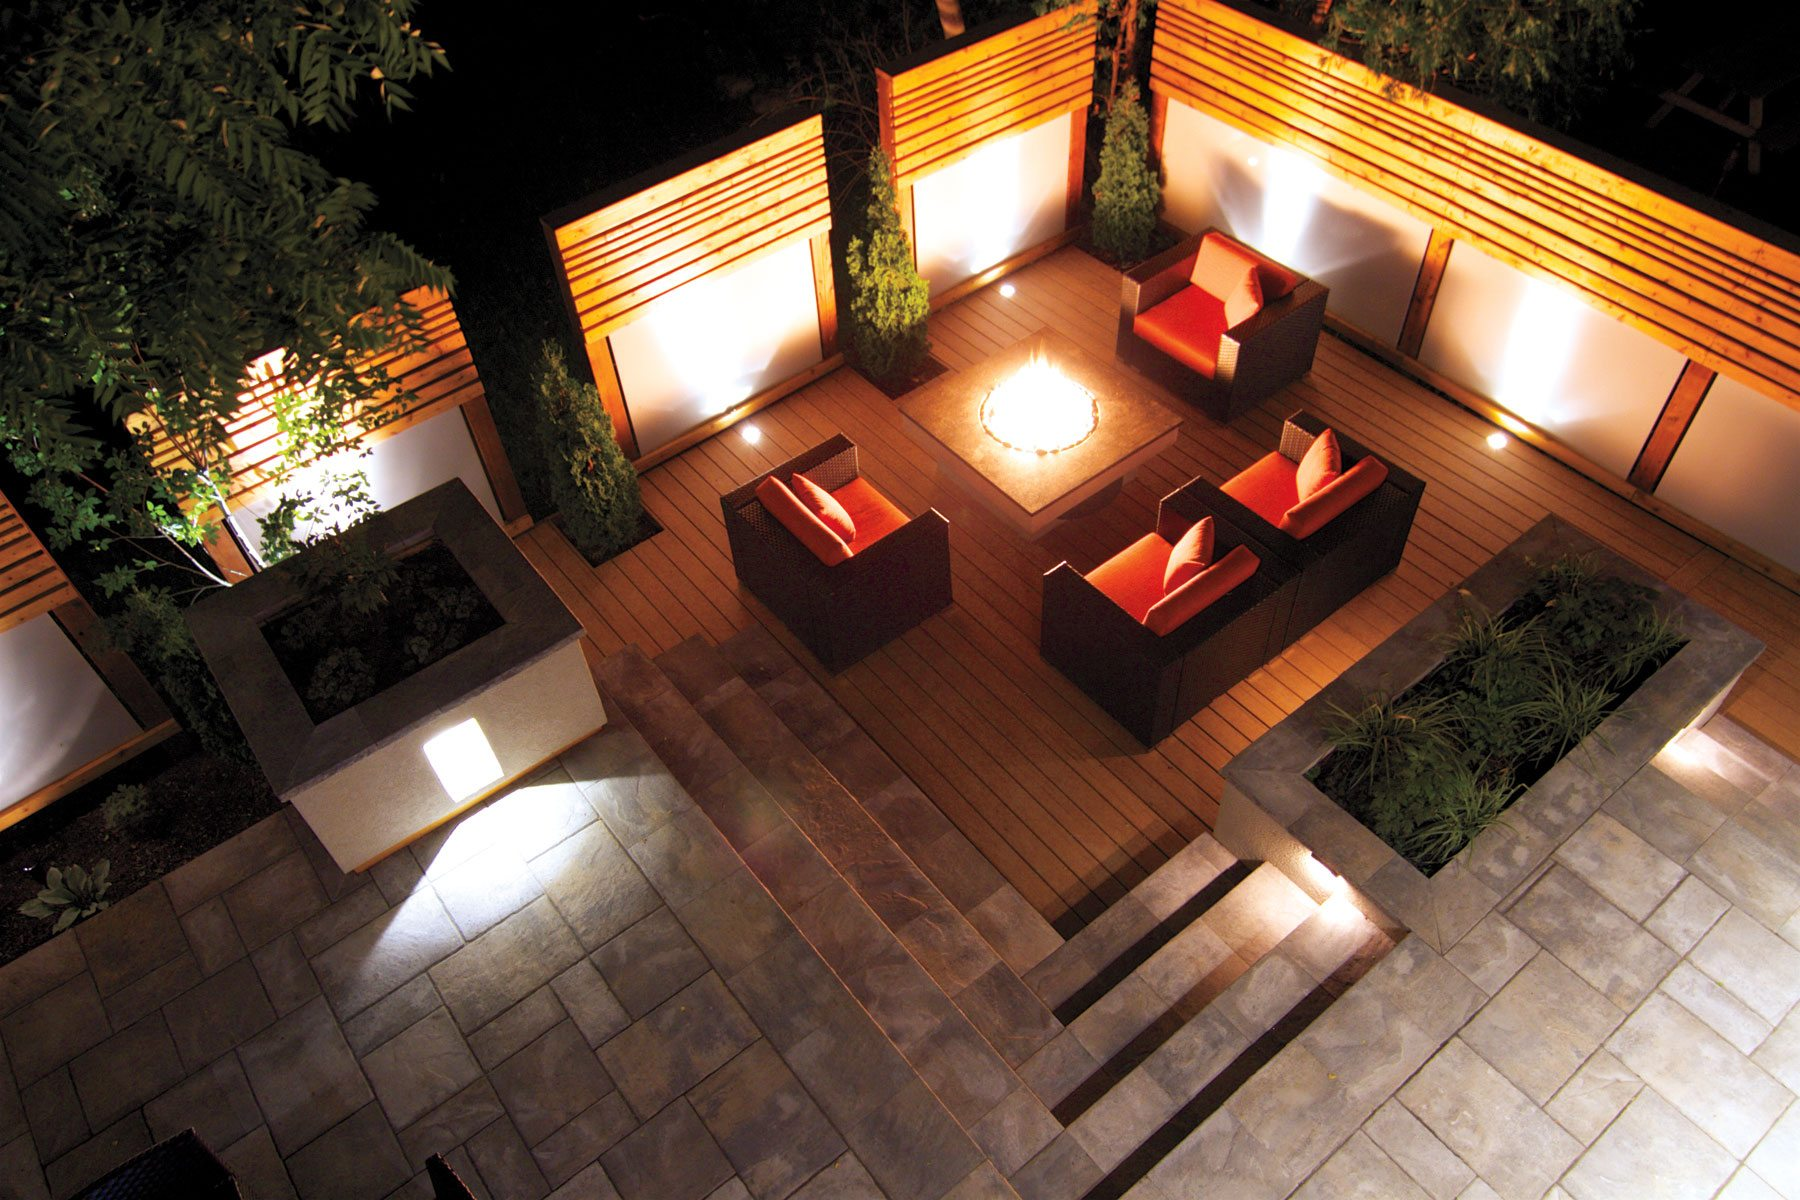 Soft lighting makes the area accessible day or night, while well-spaced screens afford some privacy but don't block the sun. The stone steps lead to a dining and barbecue area at the back of the house